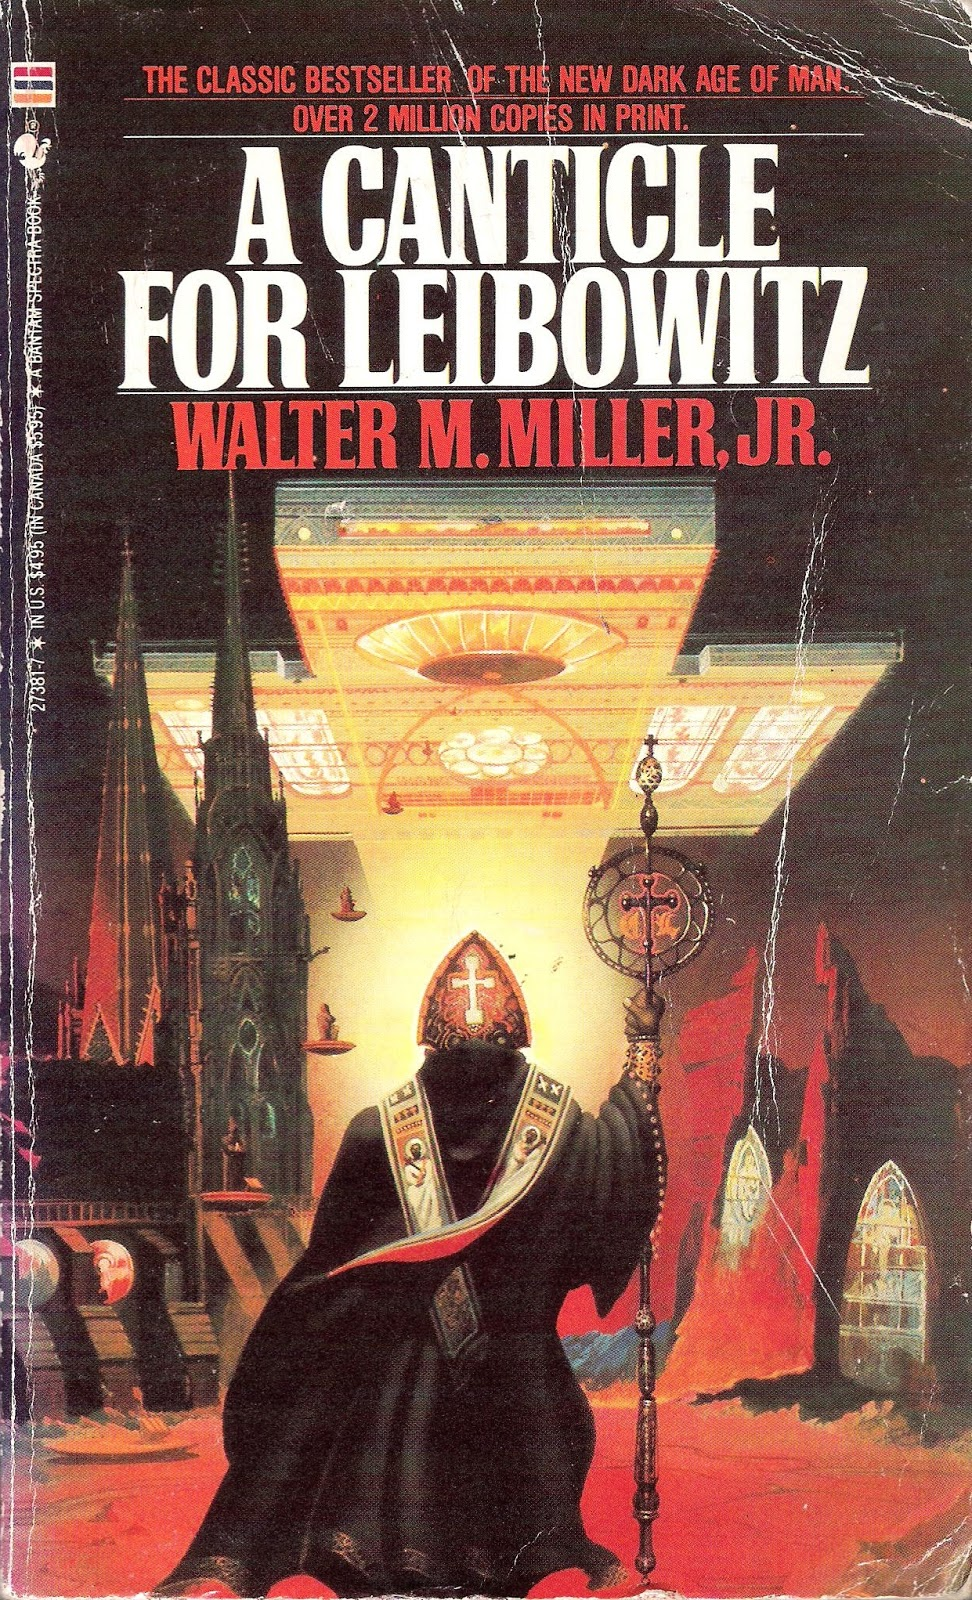 A Canticle for Liebowitz by Walter M. Miller Jr